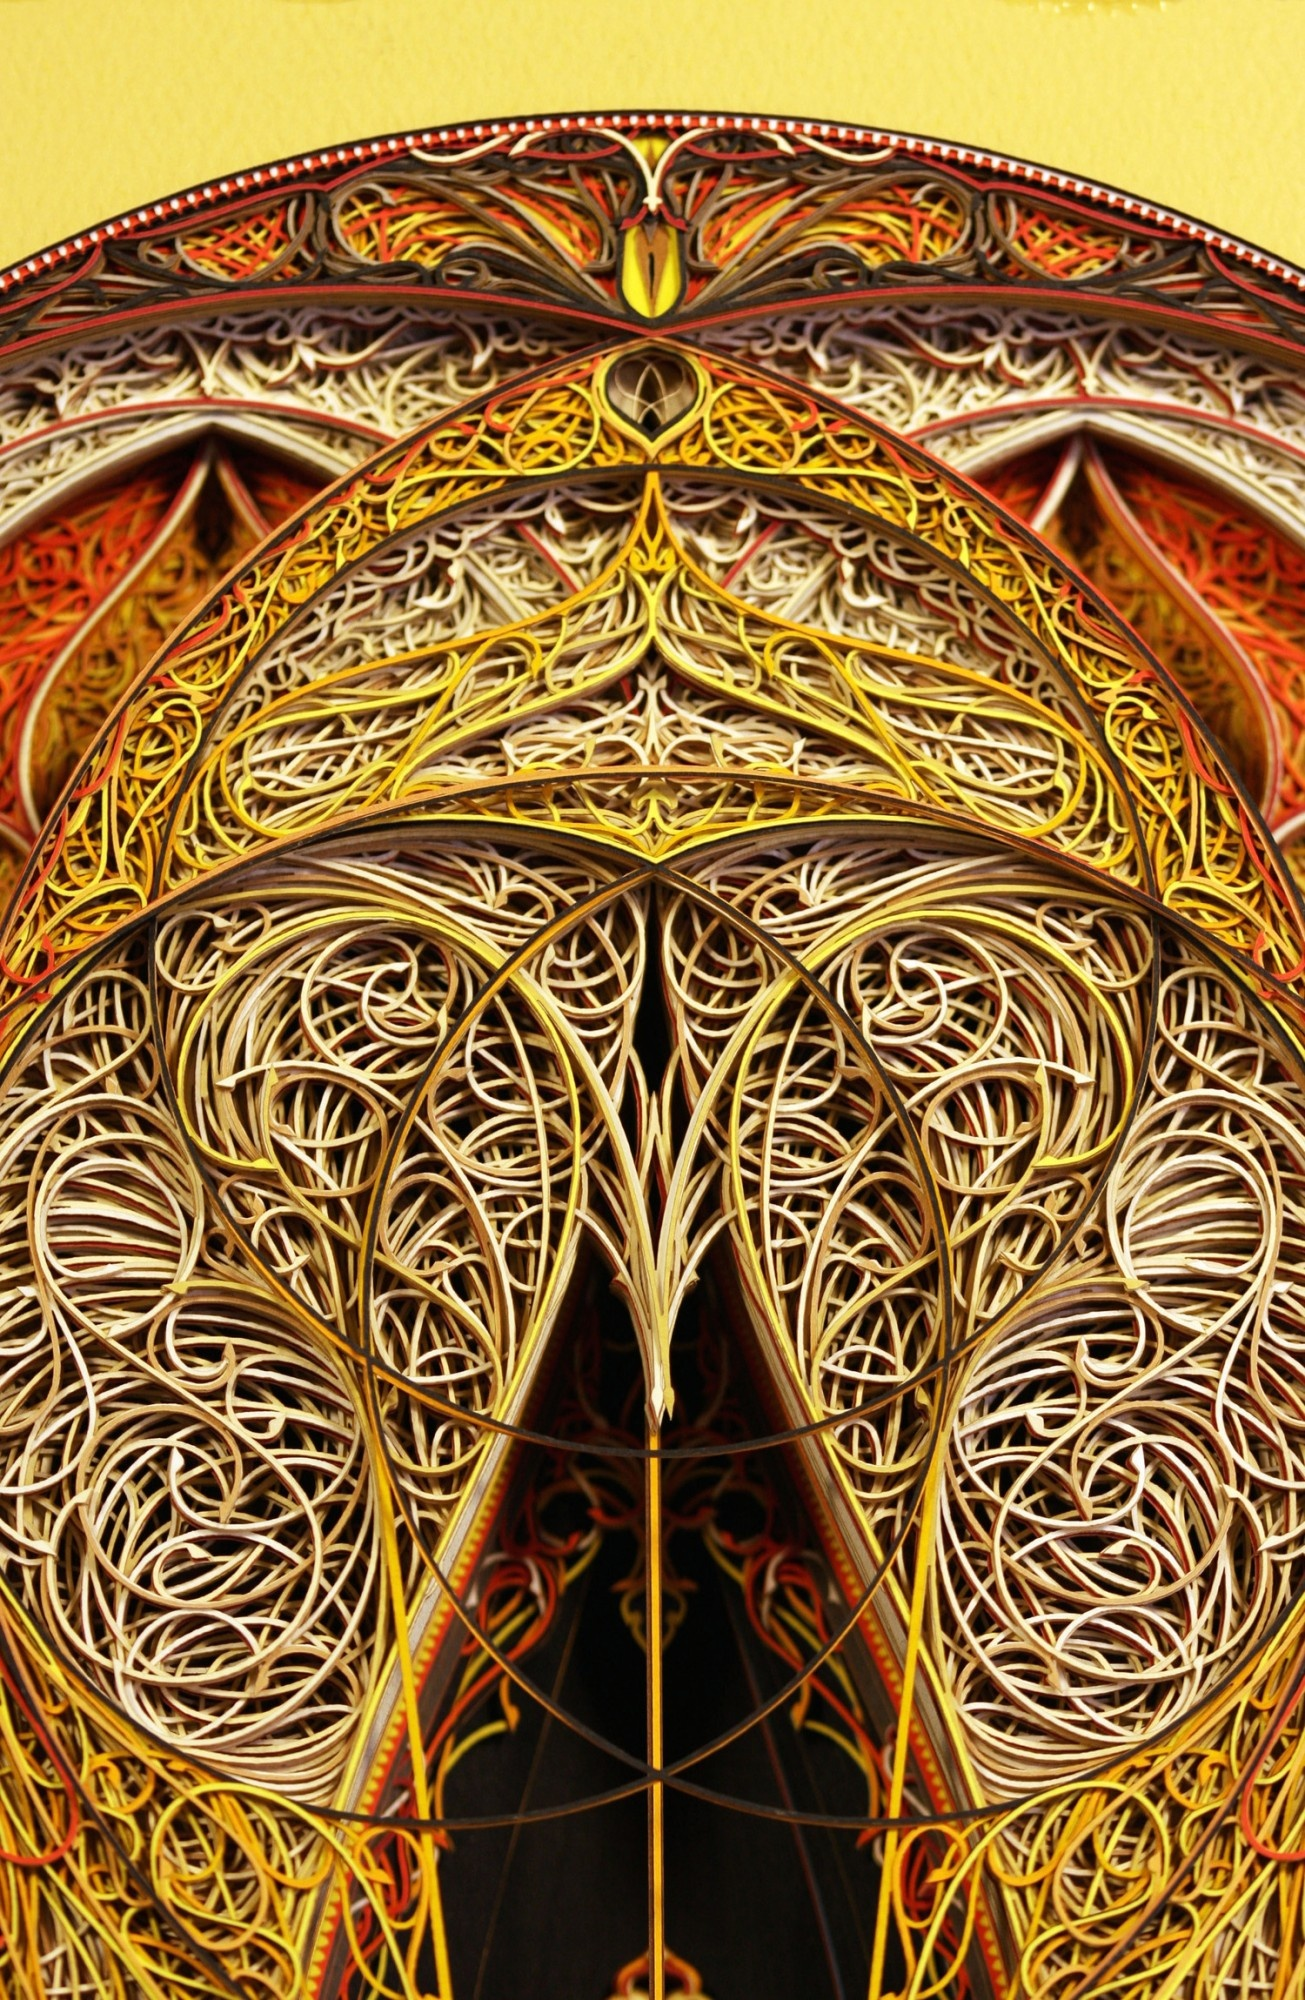 intricate-stained-glass-windows-colorful-laser-cut-paper-eric-standley-either-or-epsilon-detail-1-strictlypaper